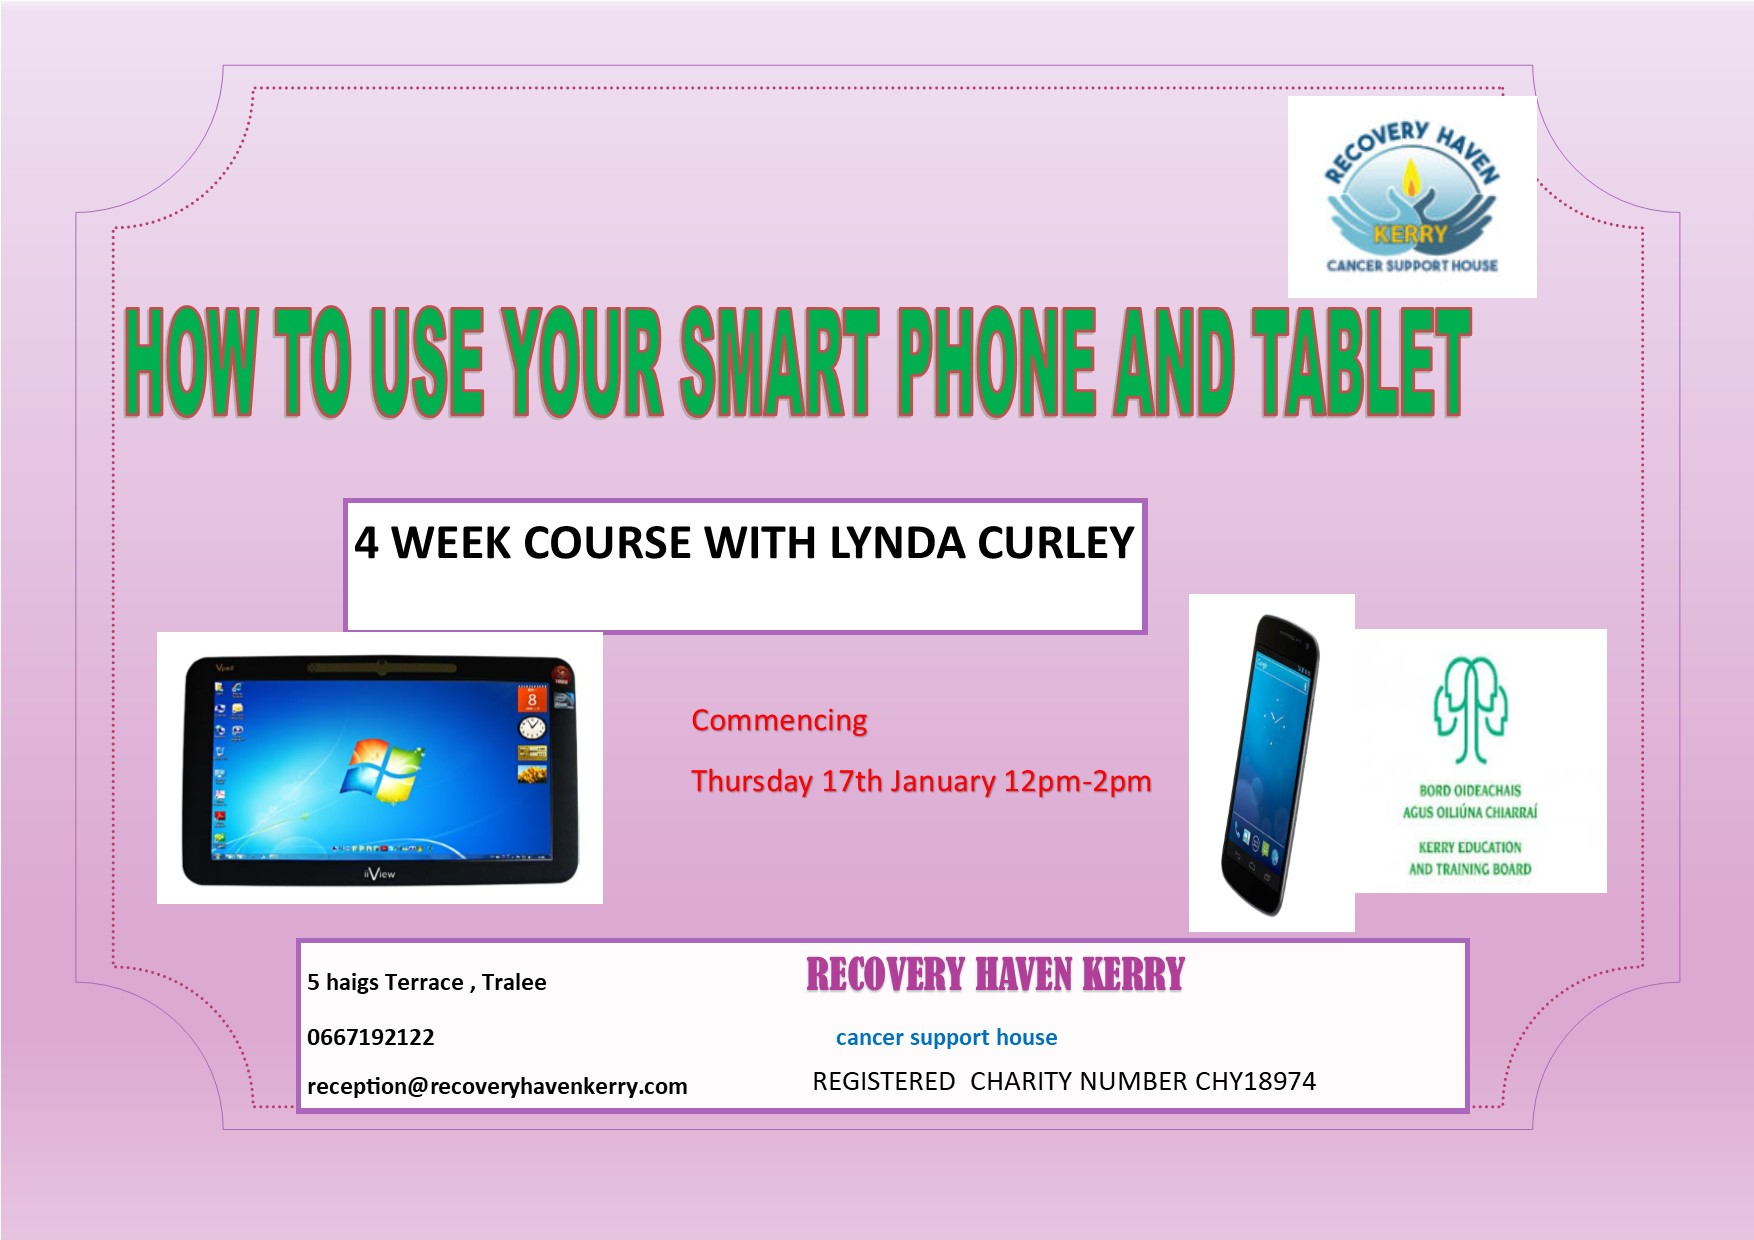 How to use a Smart Phone 2019